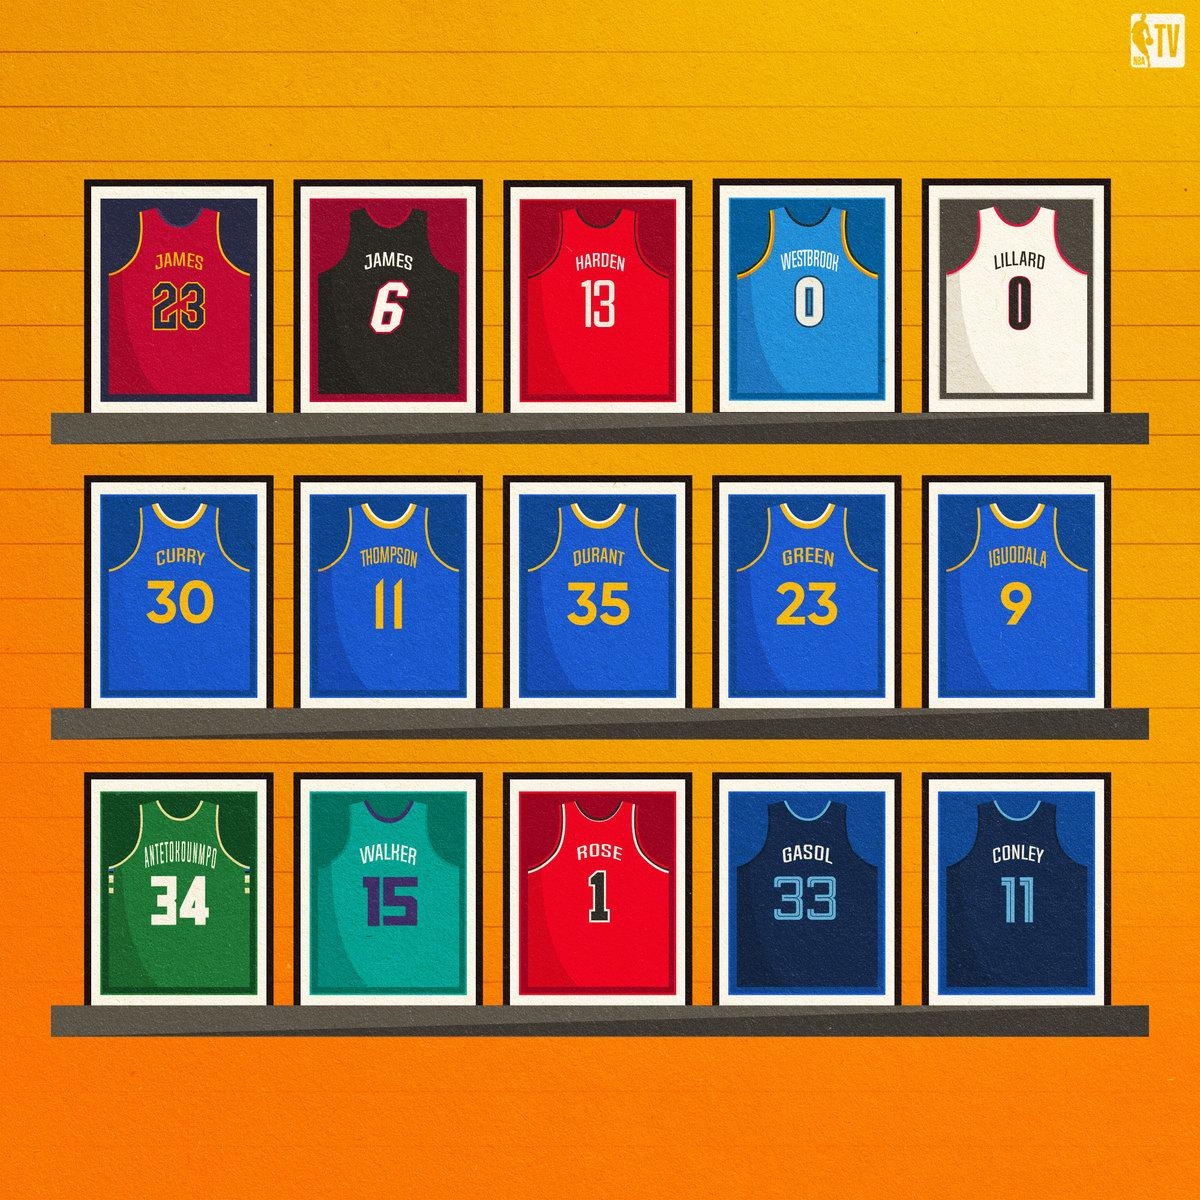 On the heels of Tony Parker's jersey retirement, https://on.nba.com/2O7x3Bb's  @SekouSmithNBA looks at 21 active ⭐️'s who should have their jersey retired someday as well. Do you agree?🤔  More: https://on.nba.com/2Qftuvp